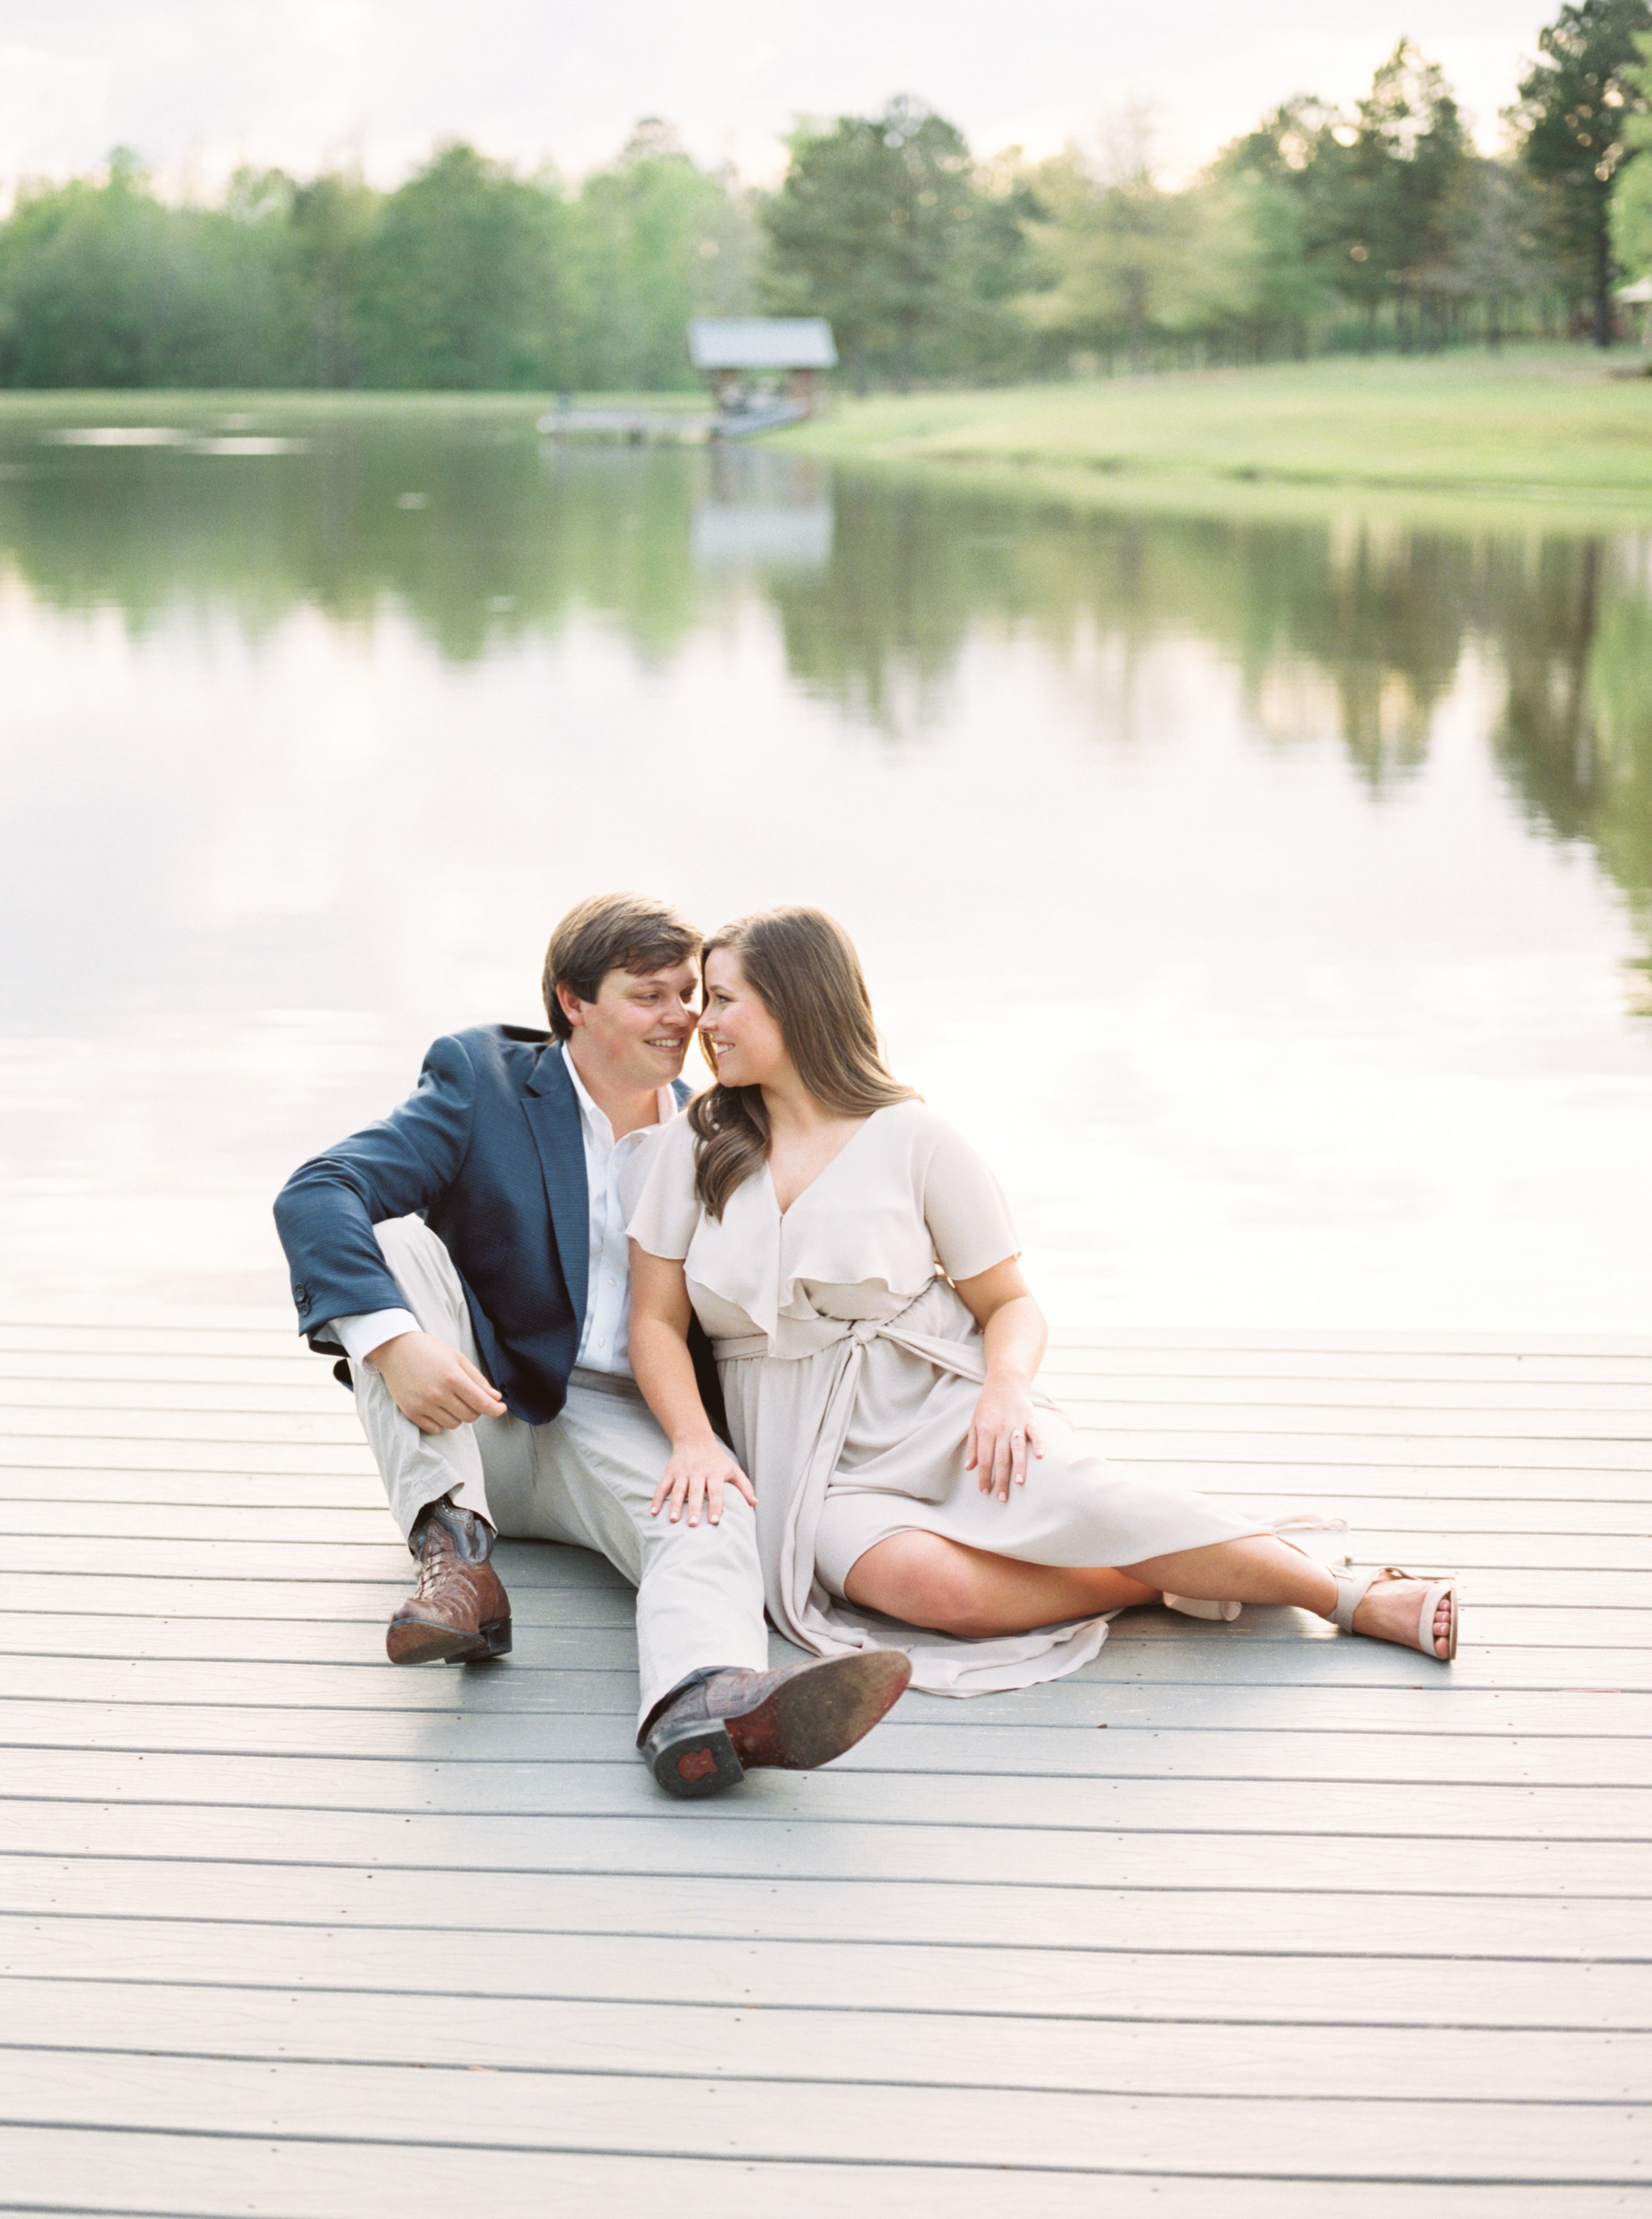 Landon_Grant_Carter_Film_Engagement_Session_Lake_Fallen_Photography_Columbus_Georgia-52.JPG